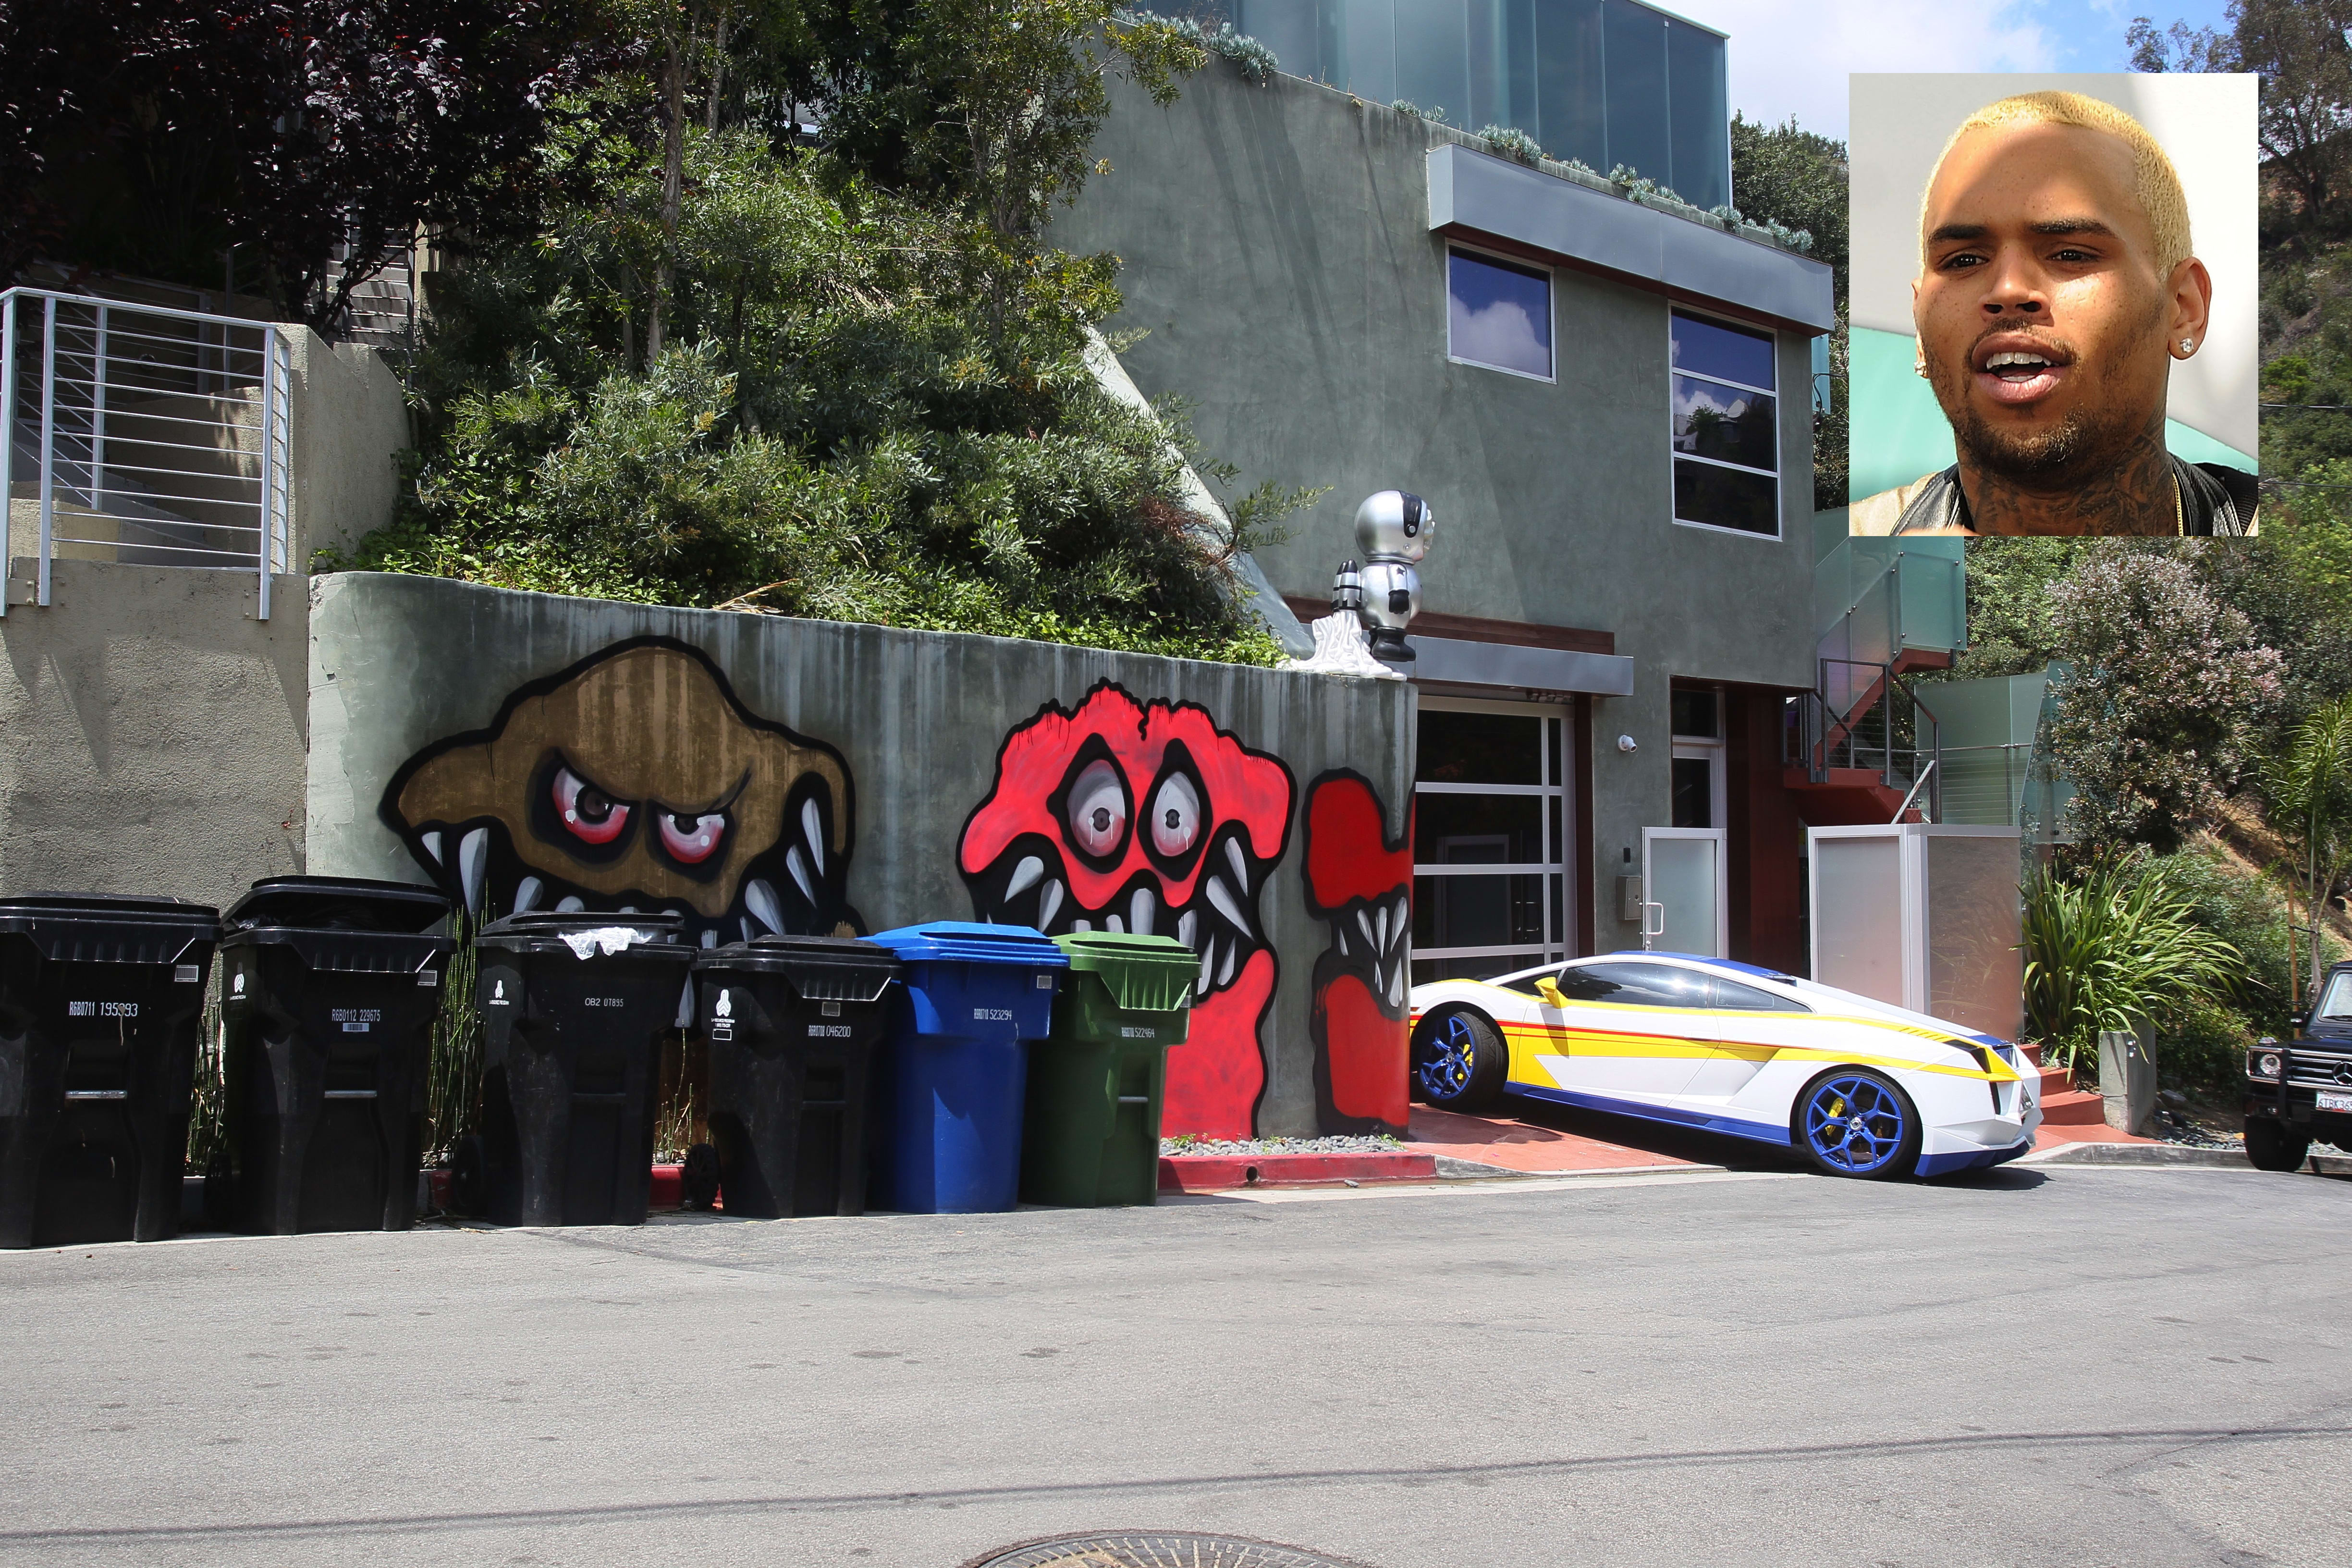 Chris Brown Graffiti Stays Up The Hollywood Gossip